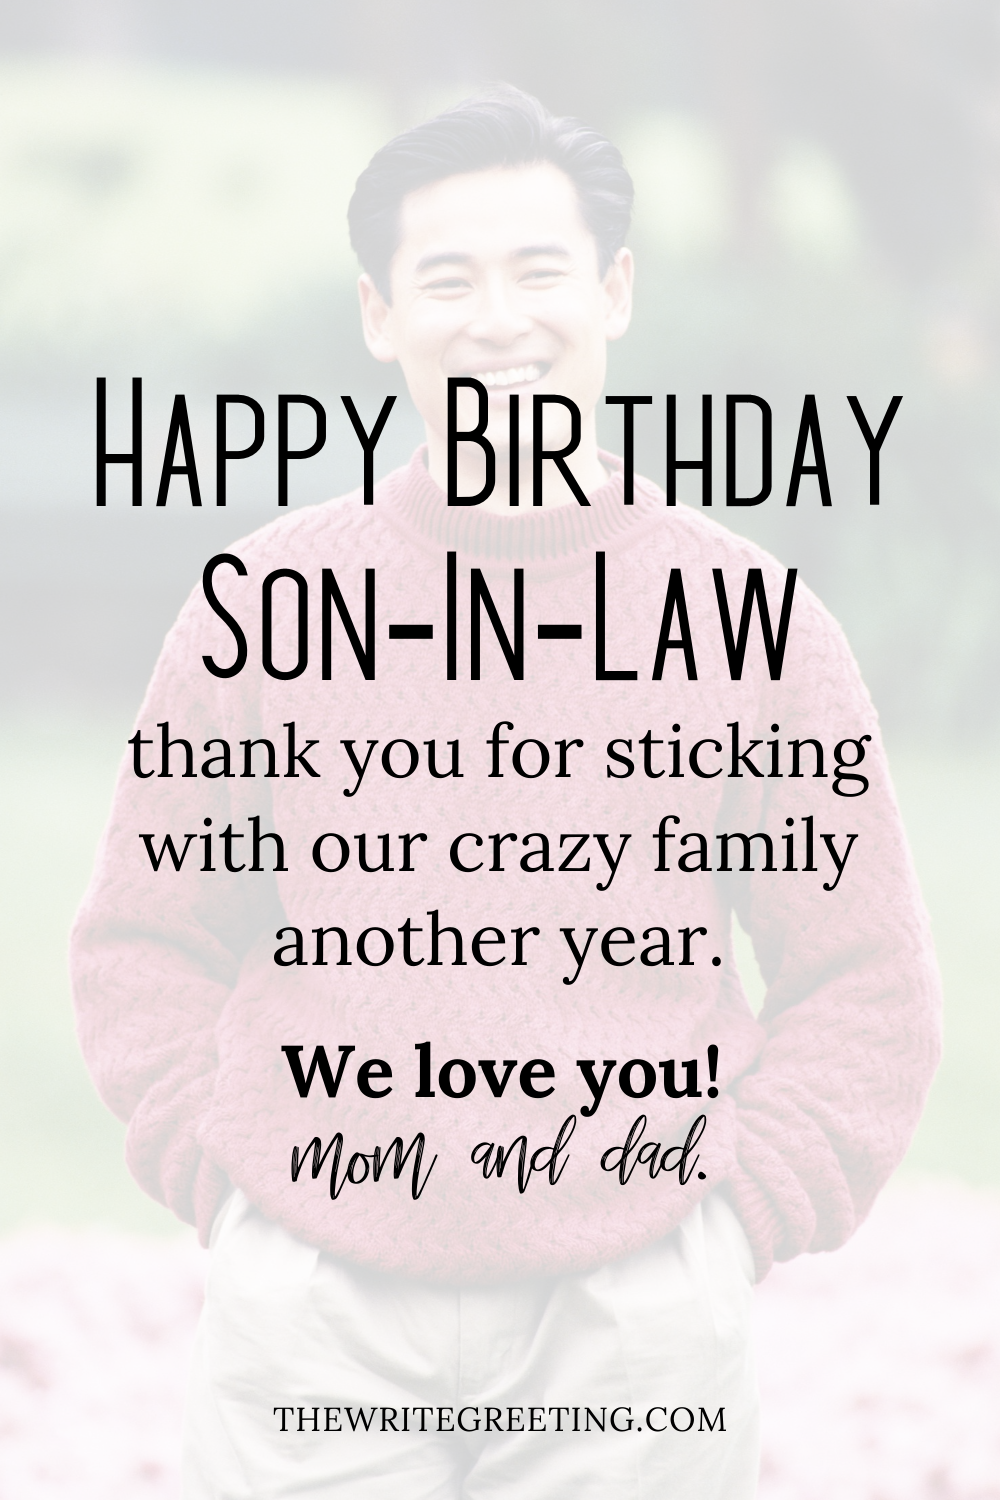 Happy Birthday Wishes For A Son In Law Birthday Wishes Birthday Wishes For Son Inspirational Birthday Message